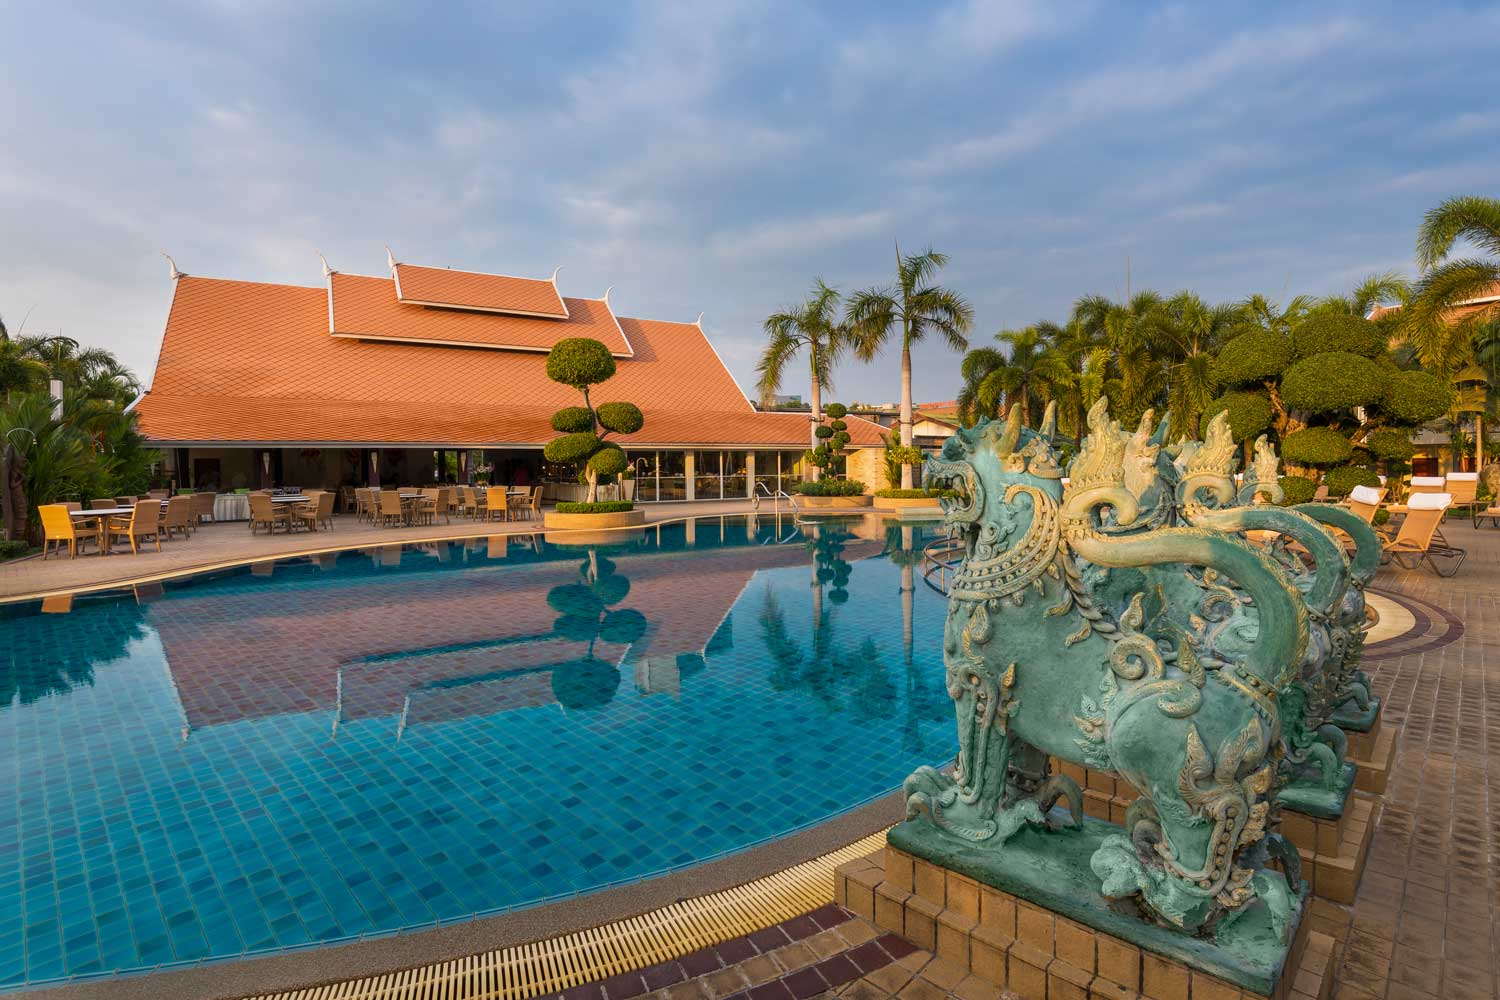 Big Swimming Pool Hotel Pattaya Thailand